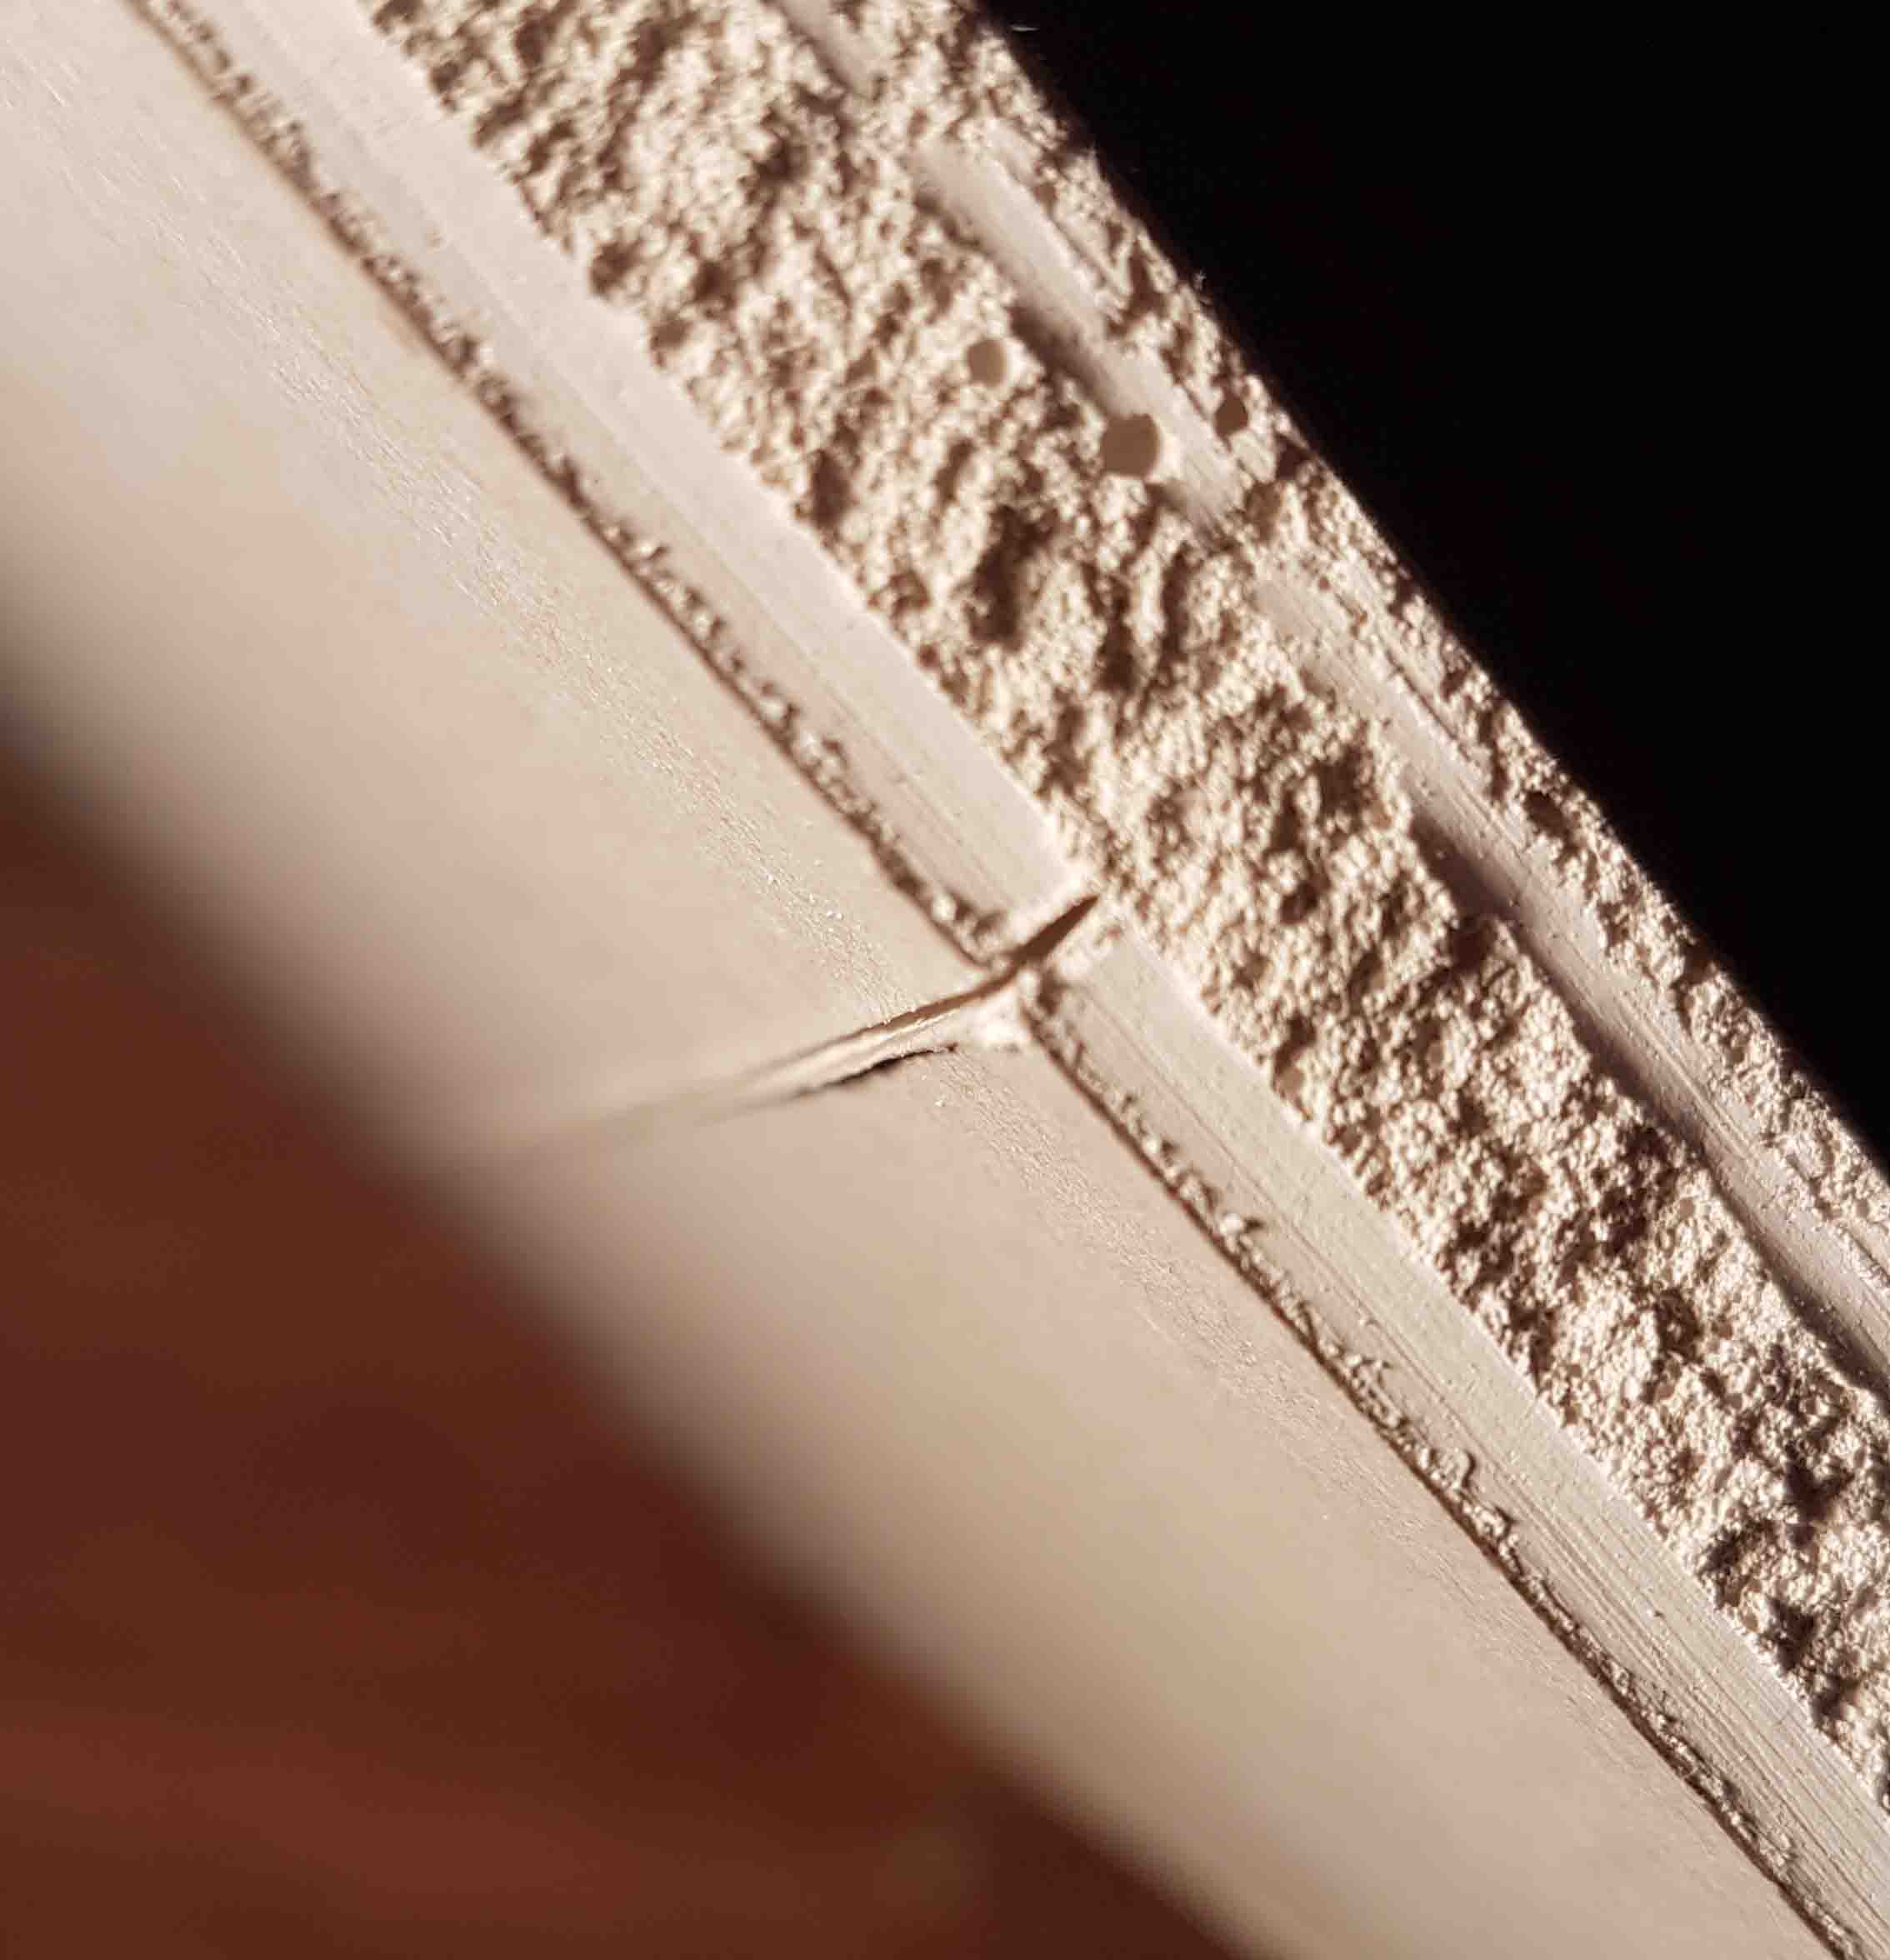 side view on a sheet of plasterboard showing a 1-2mm score line